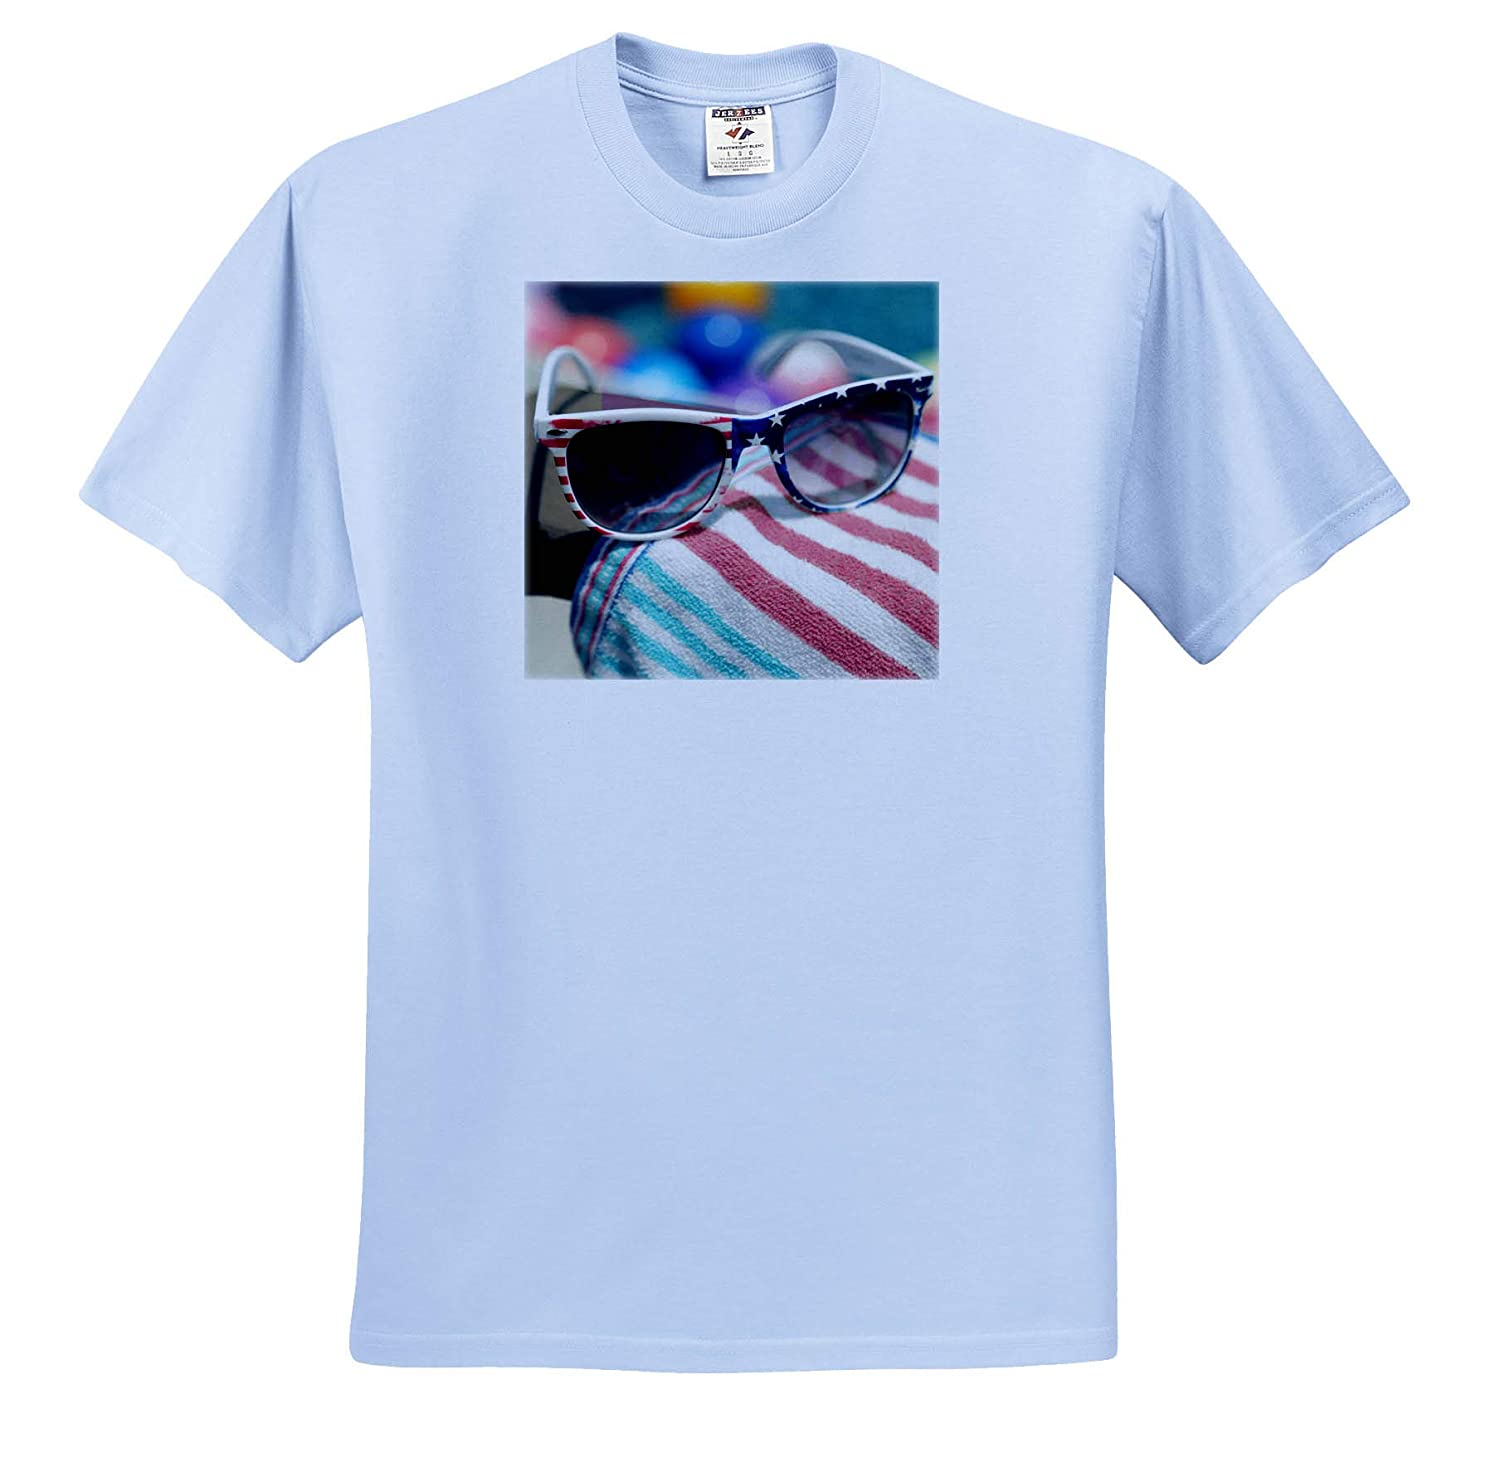 3dRose Stamp City - Adult T-Shirt XL Seasonal Photograph of Americana Sunglasses on a Striped Towel Poolside ts/_316764